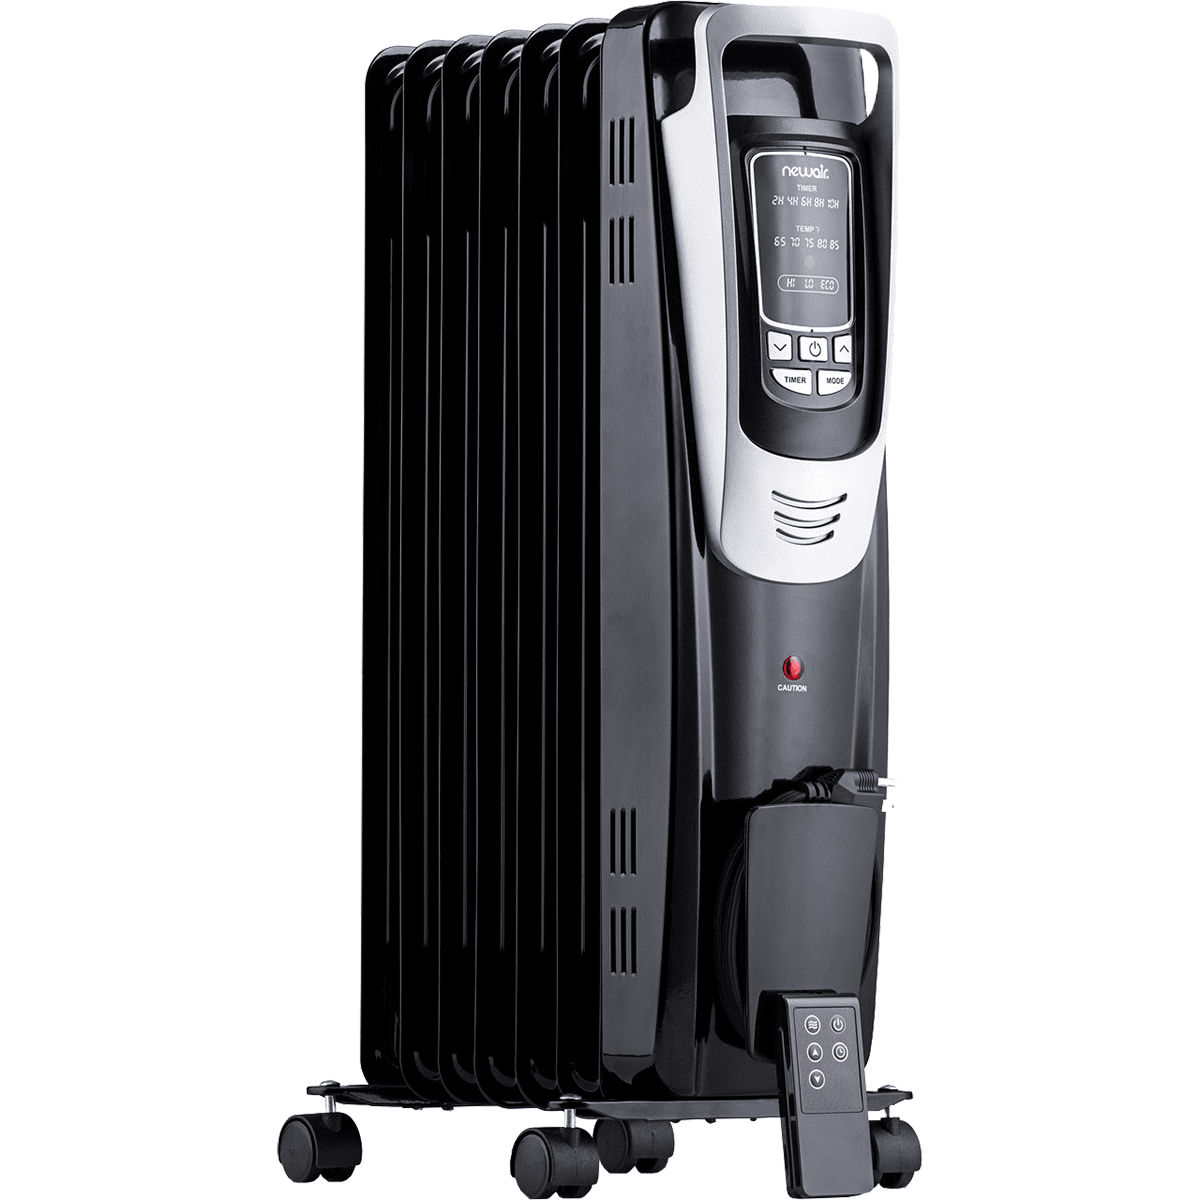 Image of NewAir AH-450B Oil-Filled Radiator Space Heater